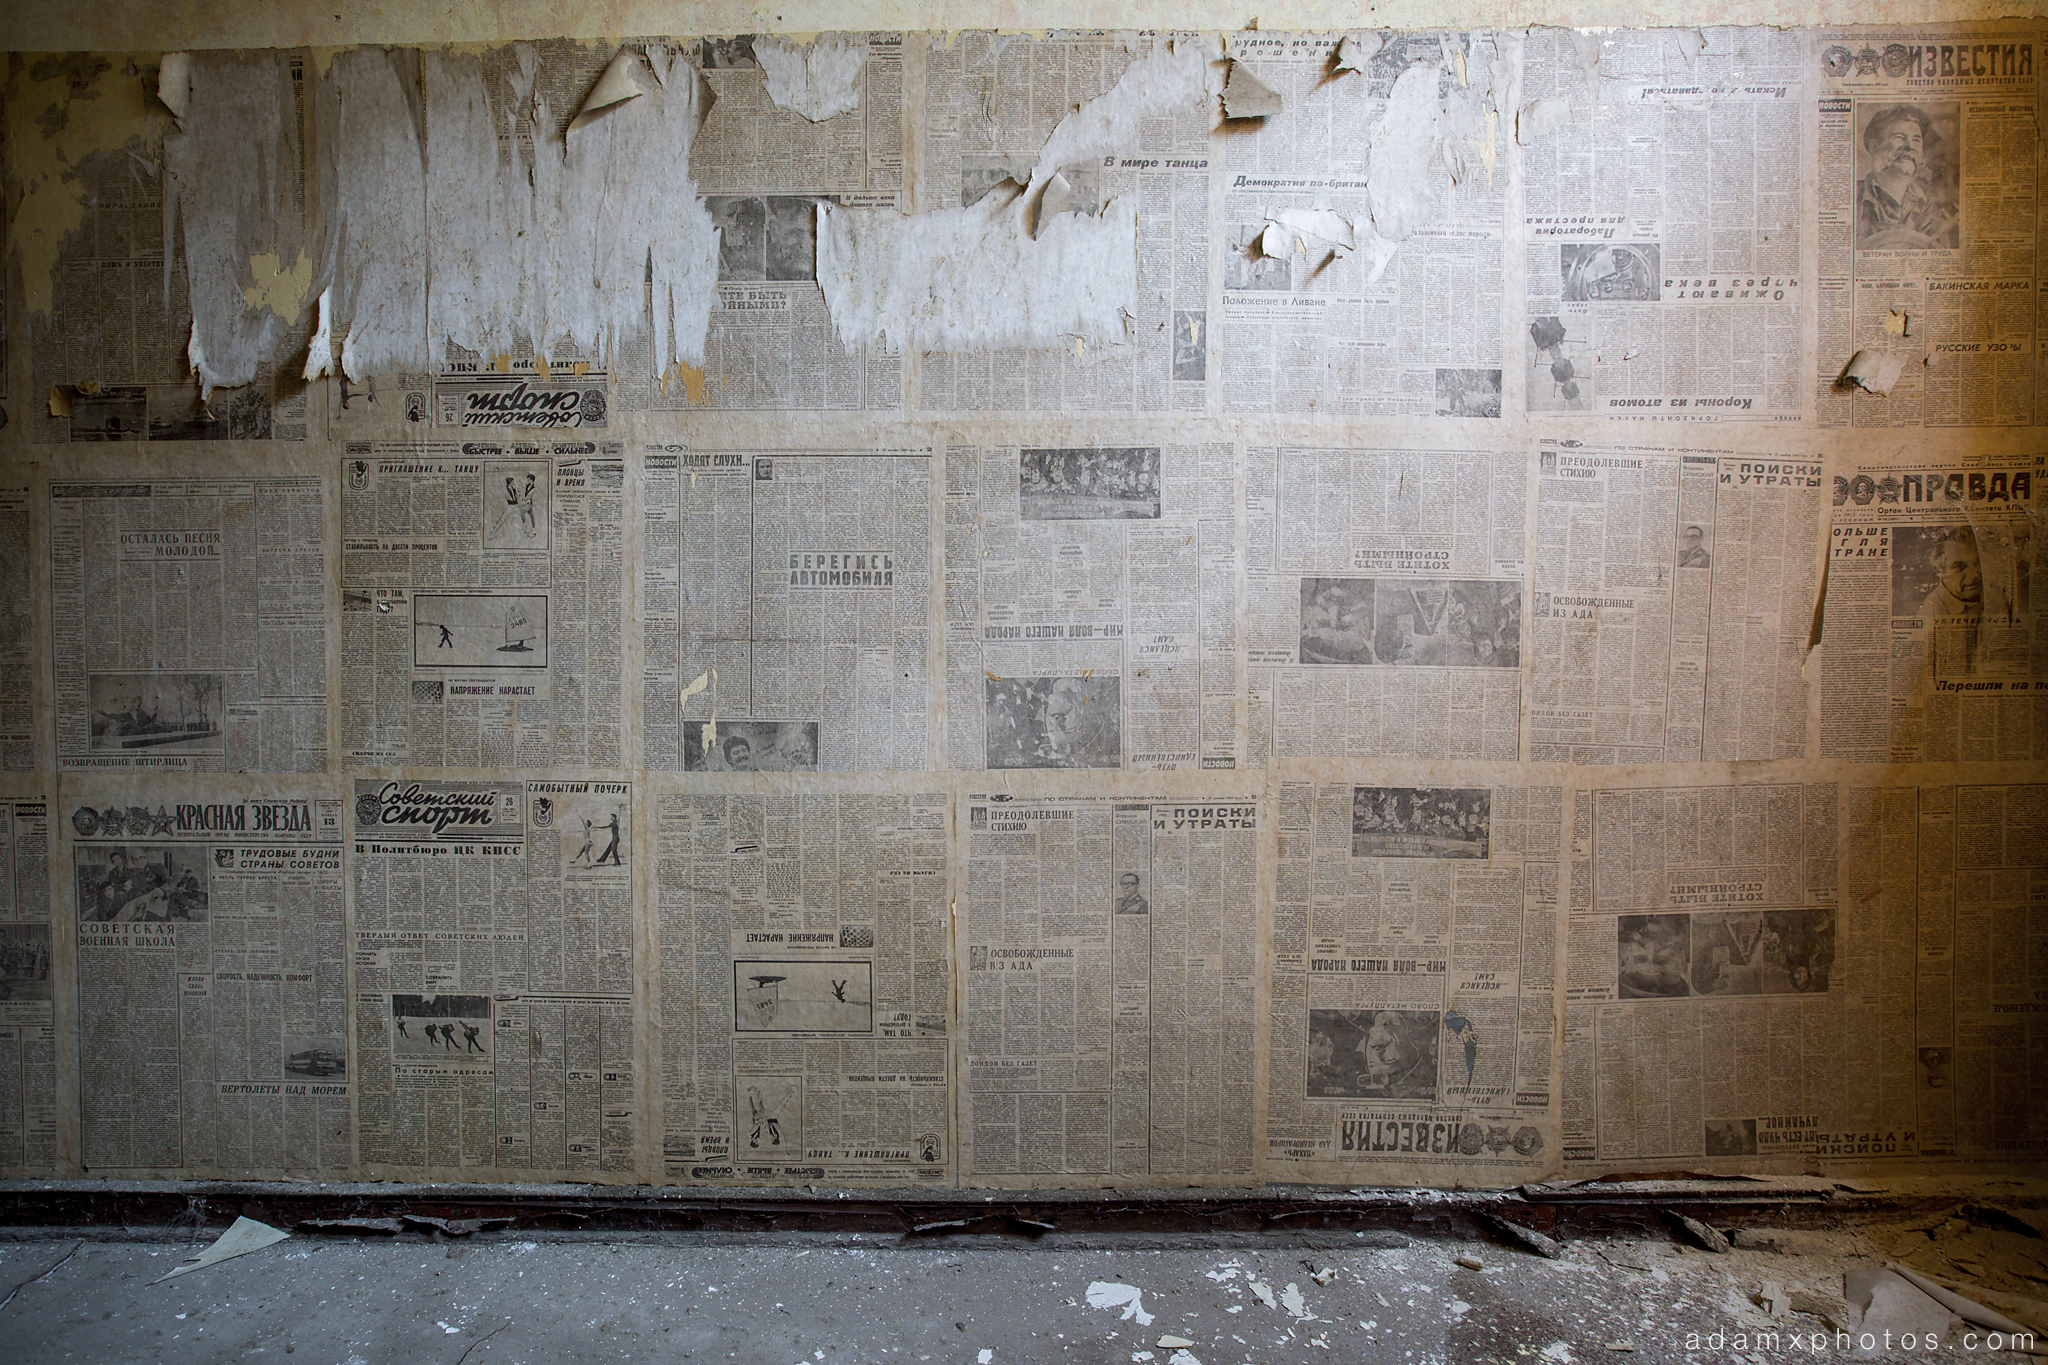 Adam X Urbex Altes Lager Juterbog Germany Urban Exploration Air base flight school CCCP Soviet Russian military Decay Lost Abandoned Derelict Hidden russian newspapers soviet wallpaper